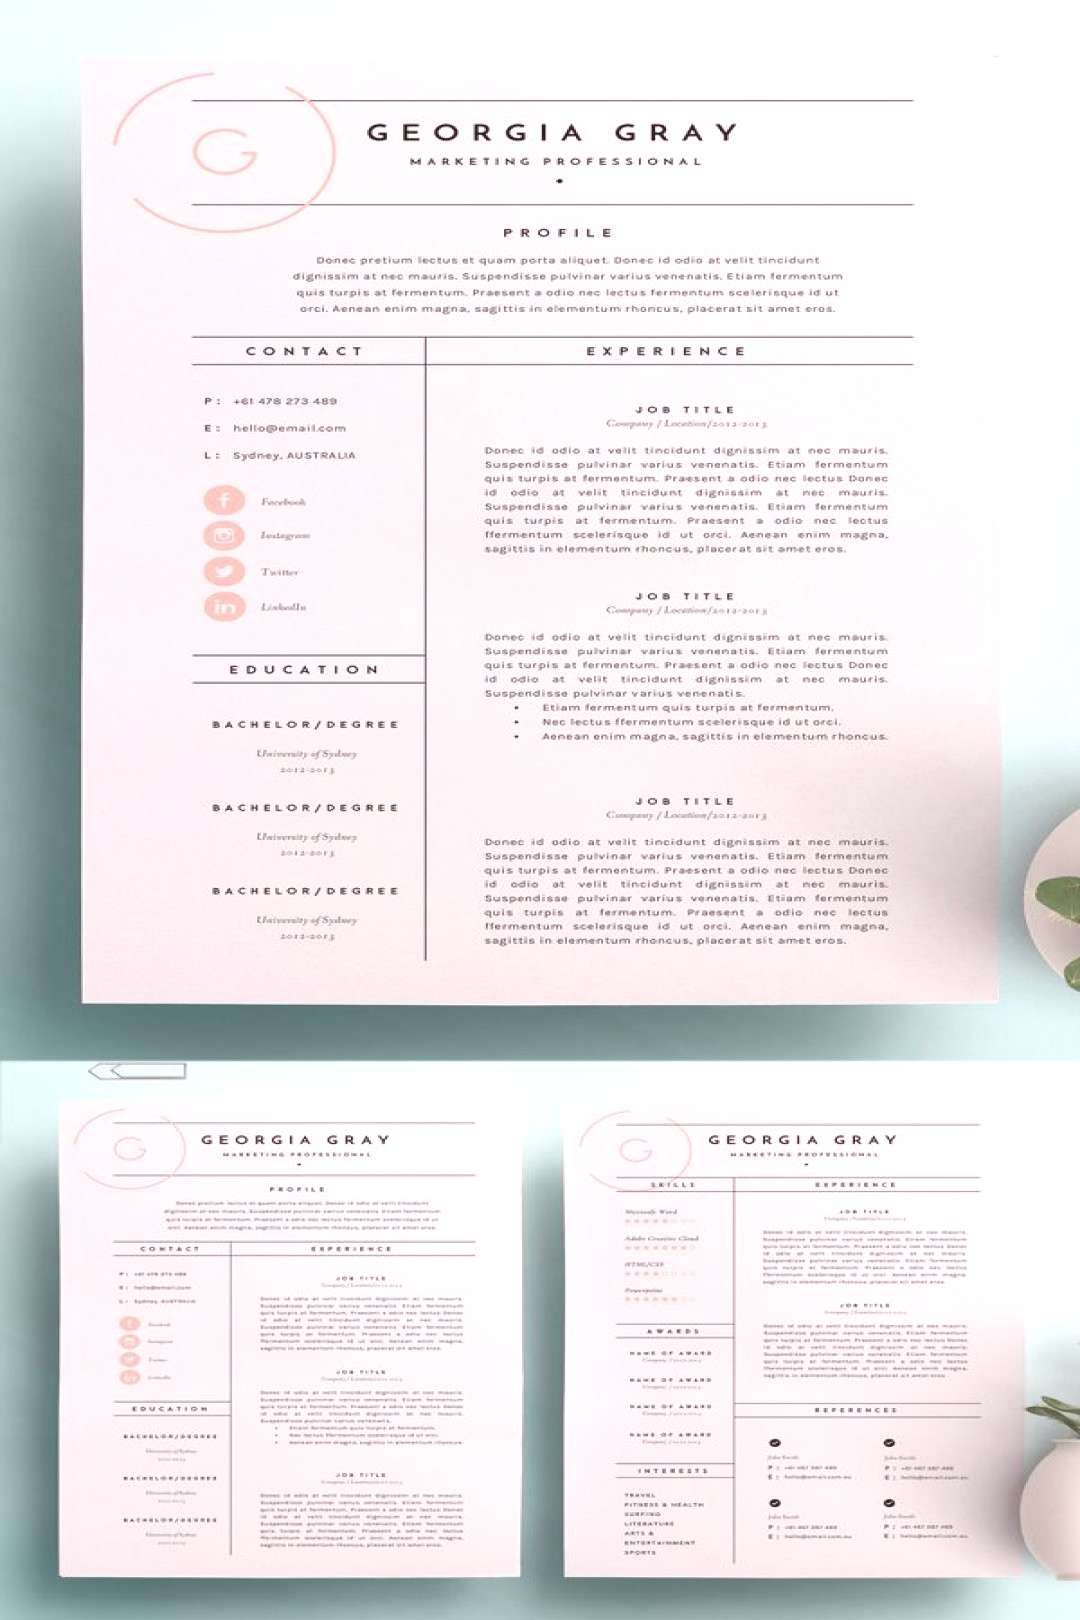 High Quality Resume Template. resume template for word, resume idea, pretty resume, work resume, re